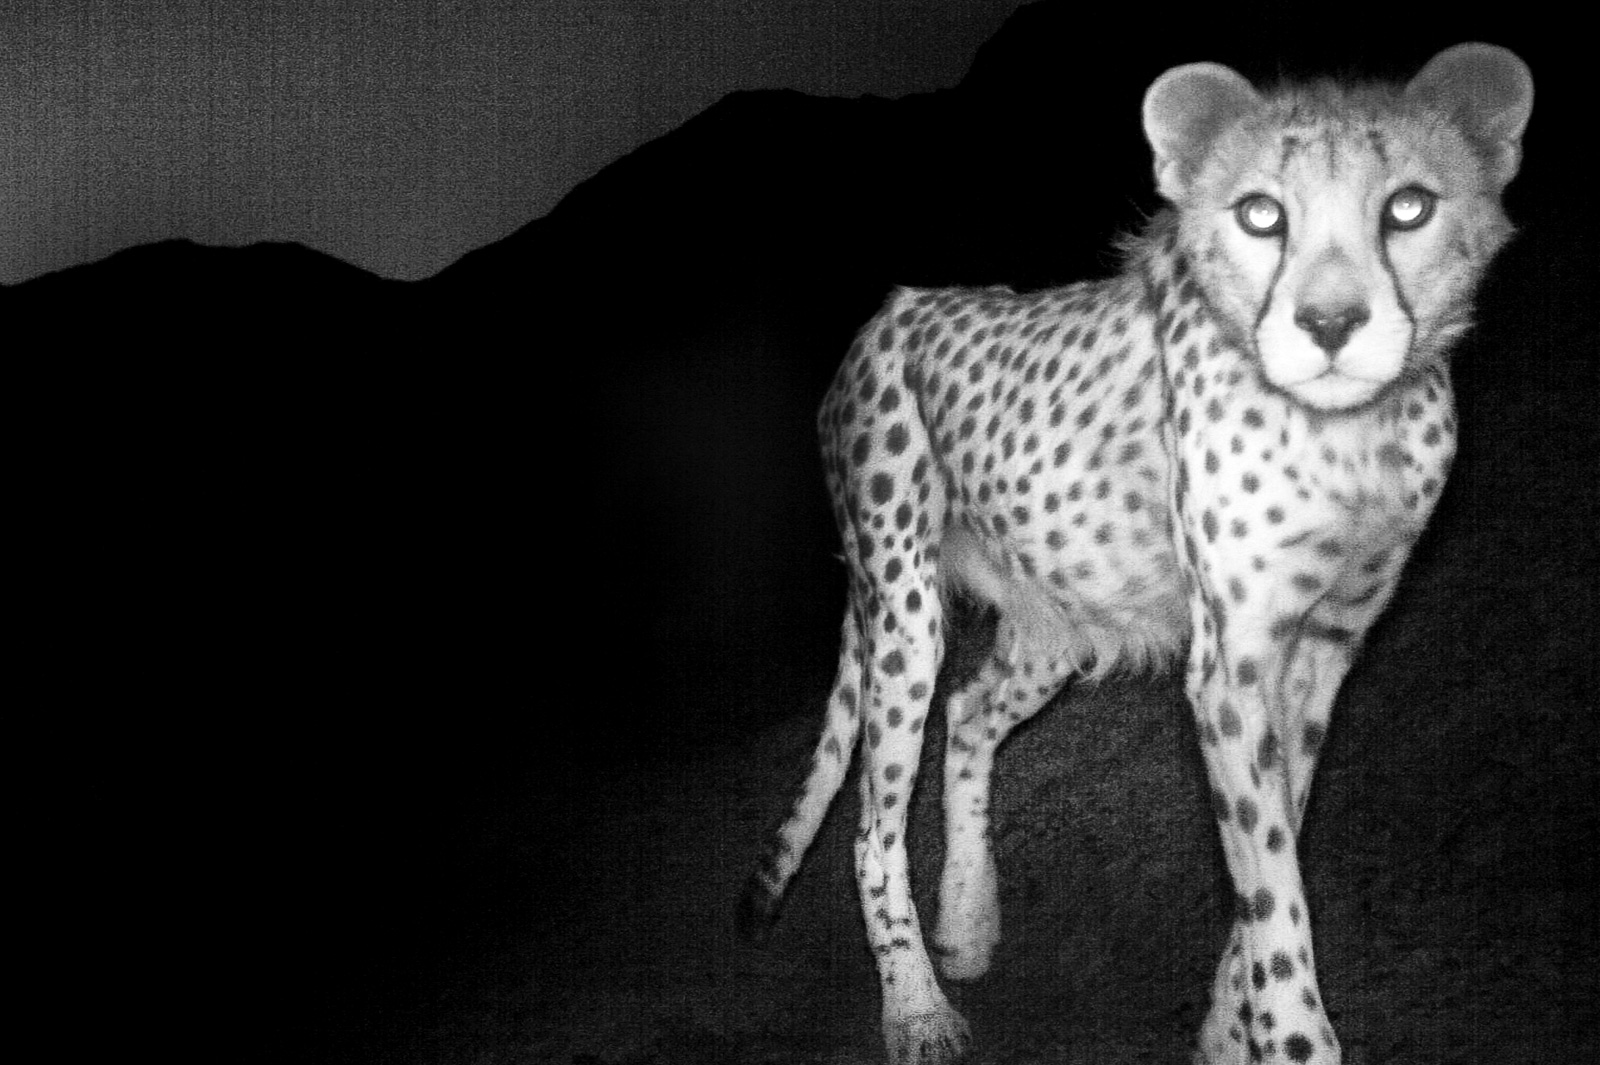 picture of a cheetah lantingasiaticcheetah020549 01a frans lanting a of picture cheetah